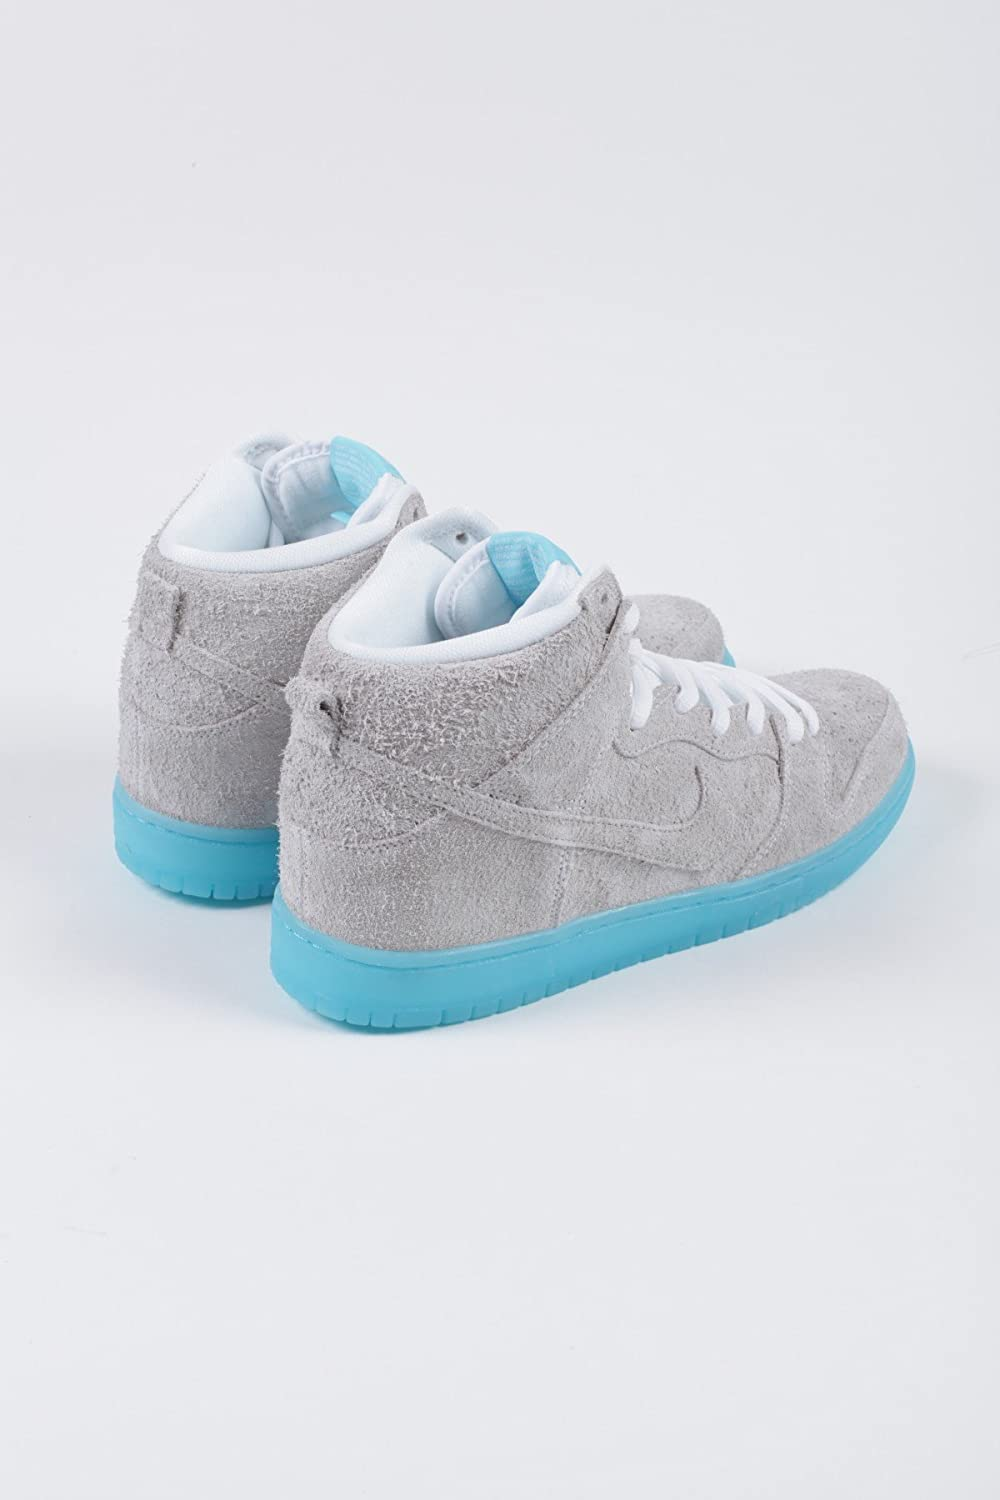 huge discount 5dafa ba1ff Amazon.com   NIKE Dunk High Premium SB Skate Shoes (White White-Polarized  Blue) 11   Shoes